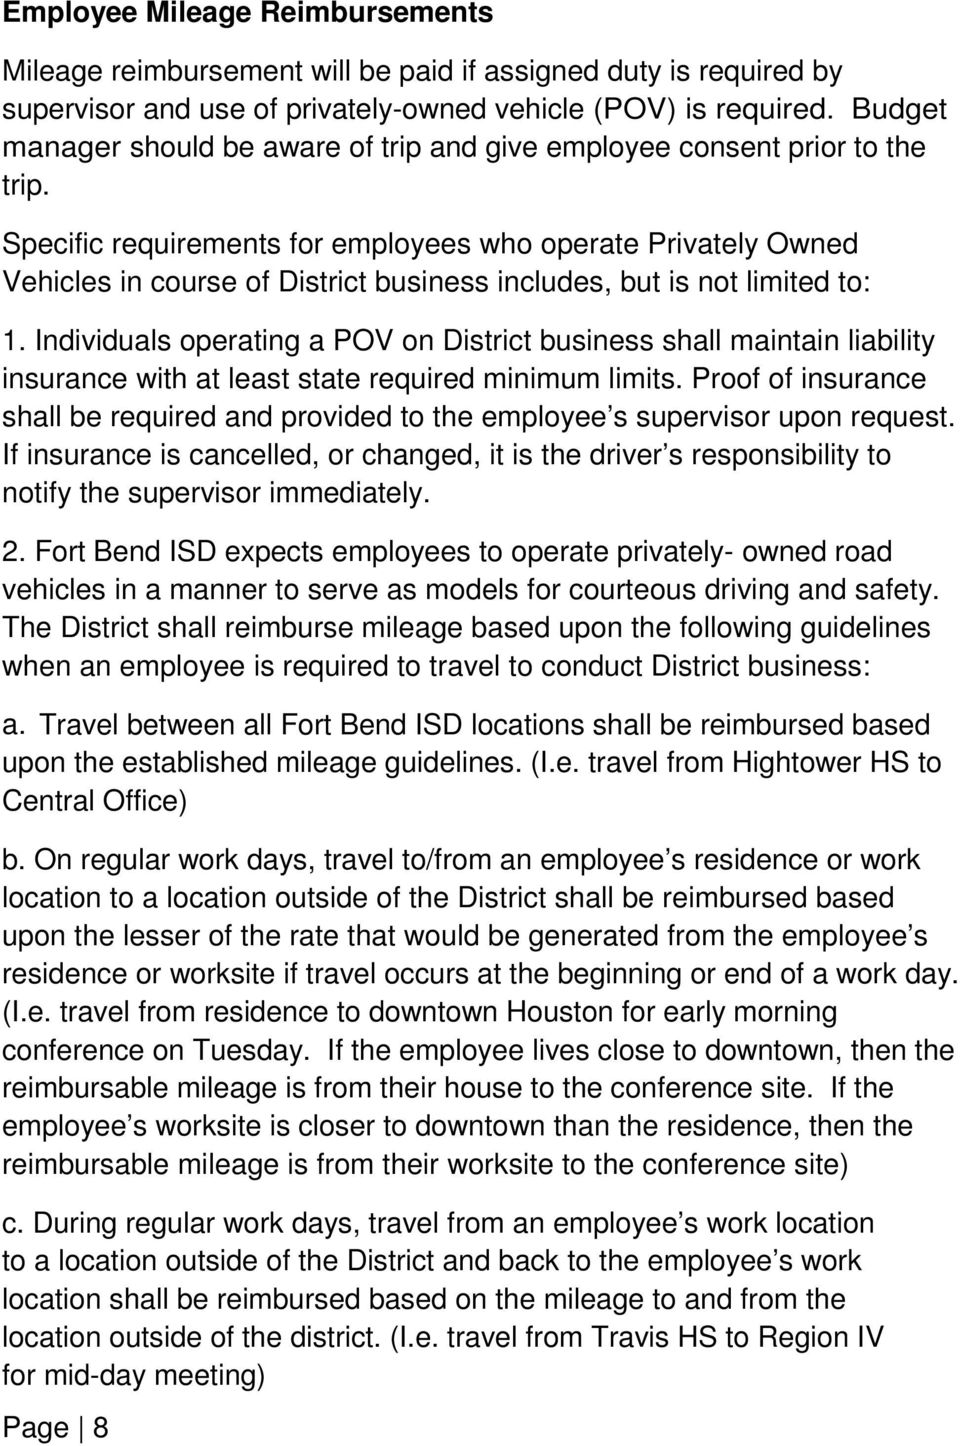 Specific requirements for employees who operate Privately Owned Vehicles in course of District business includes, but is not limited to: 1.